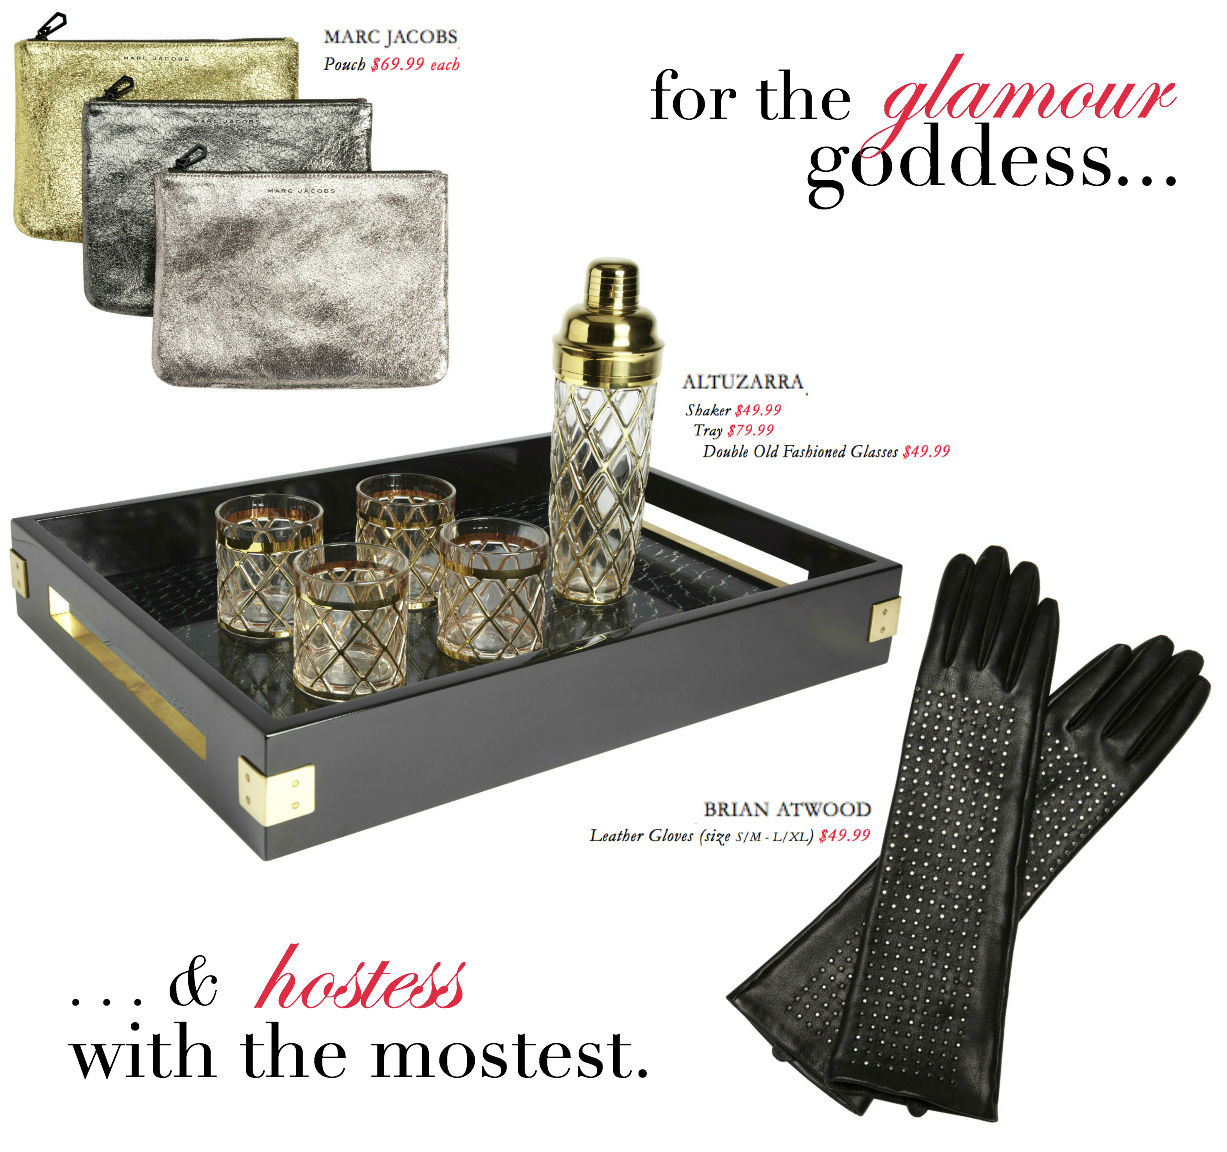 Gift Guide: Target x Neiman Marcus Holiday Shopping